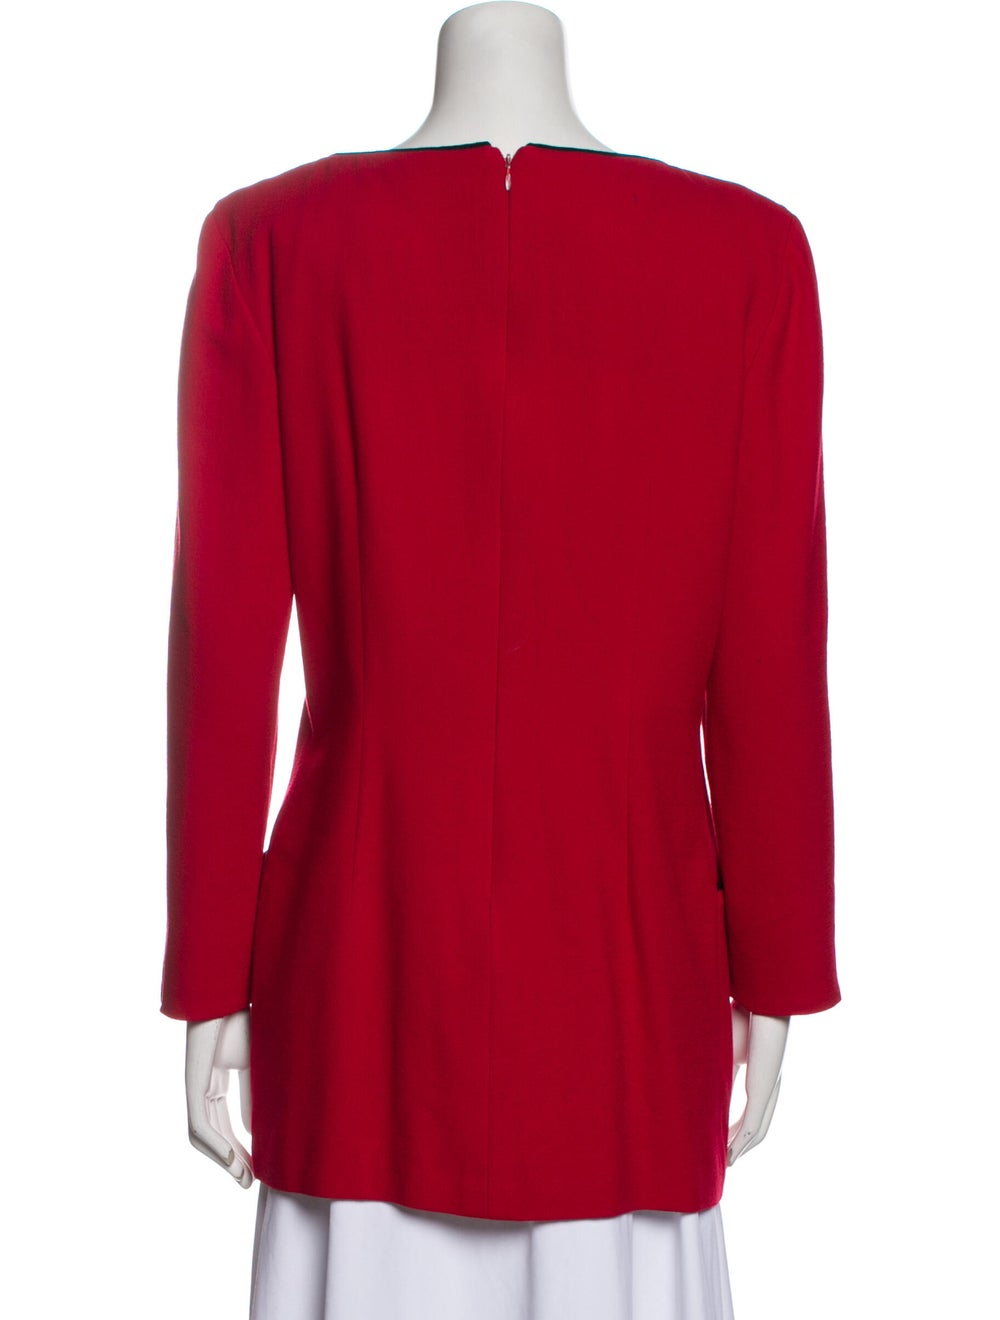 Arnold Scaasi Vintage 1980's Tunic Red - image 3